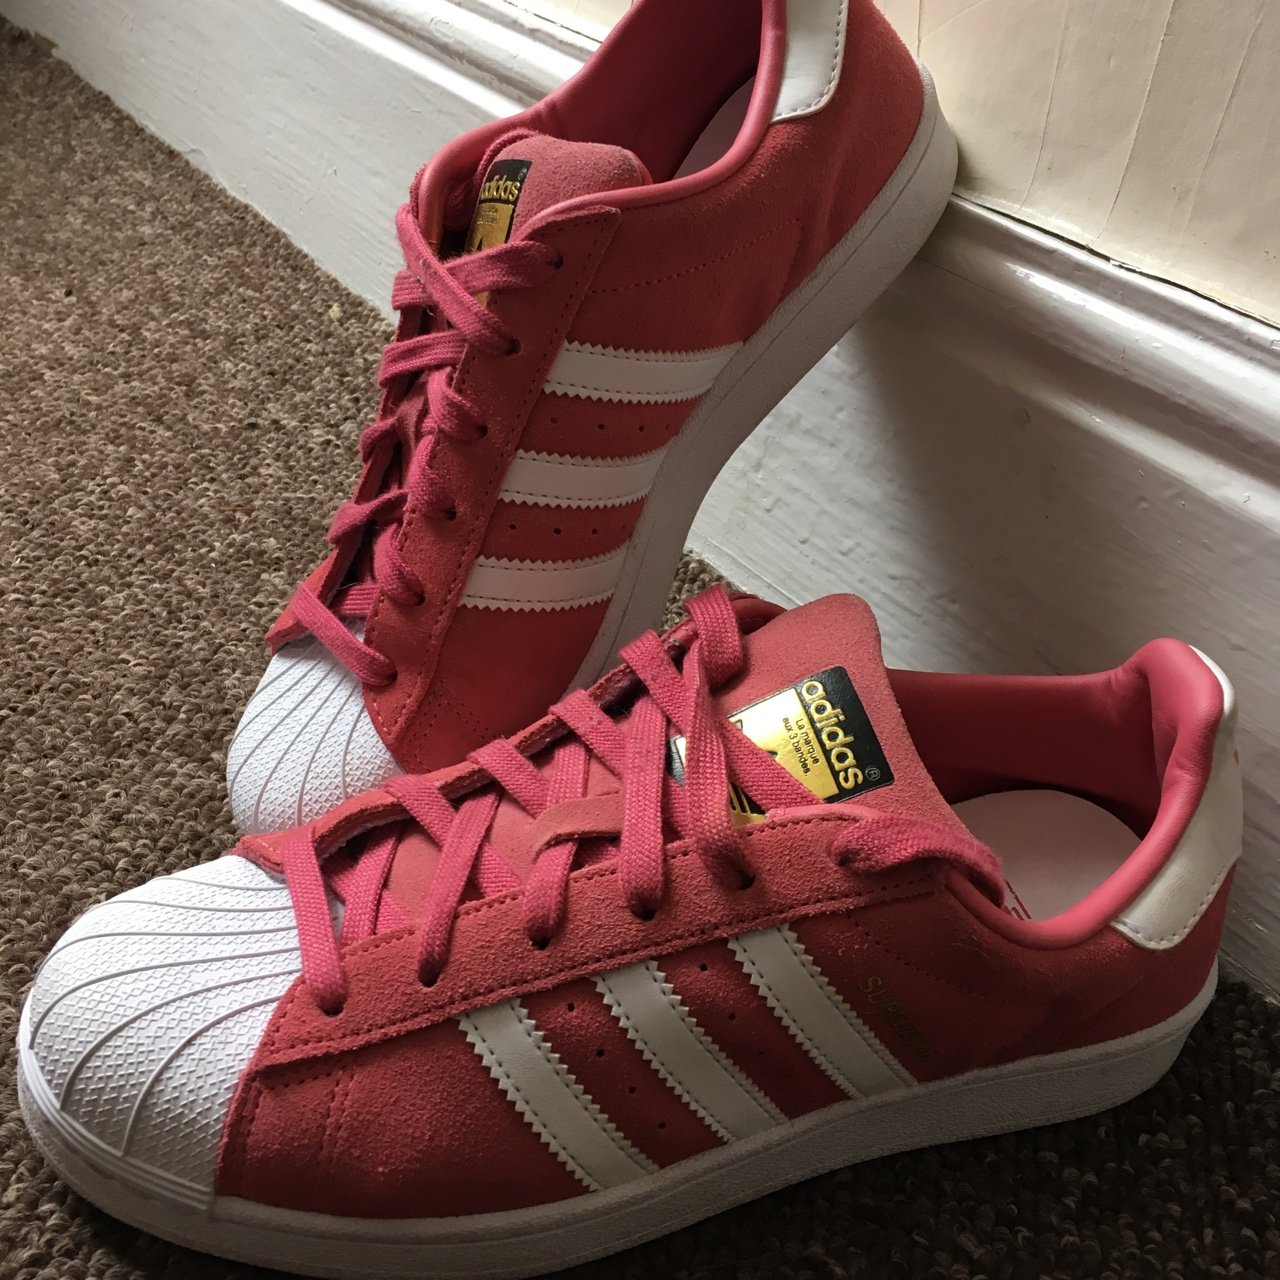 b1ec0324567c13 Pink suede adidas superstars size 5.5 only worn a few times - Depop